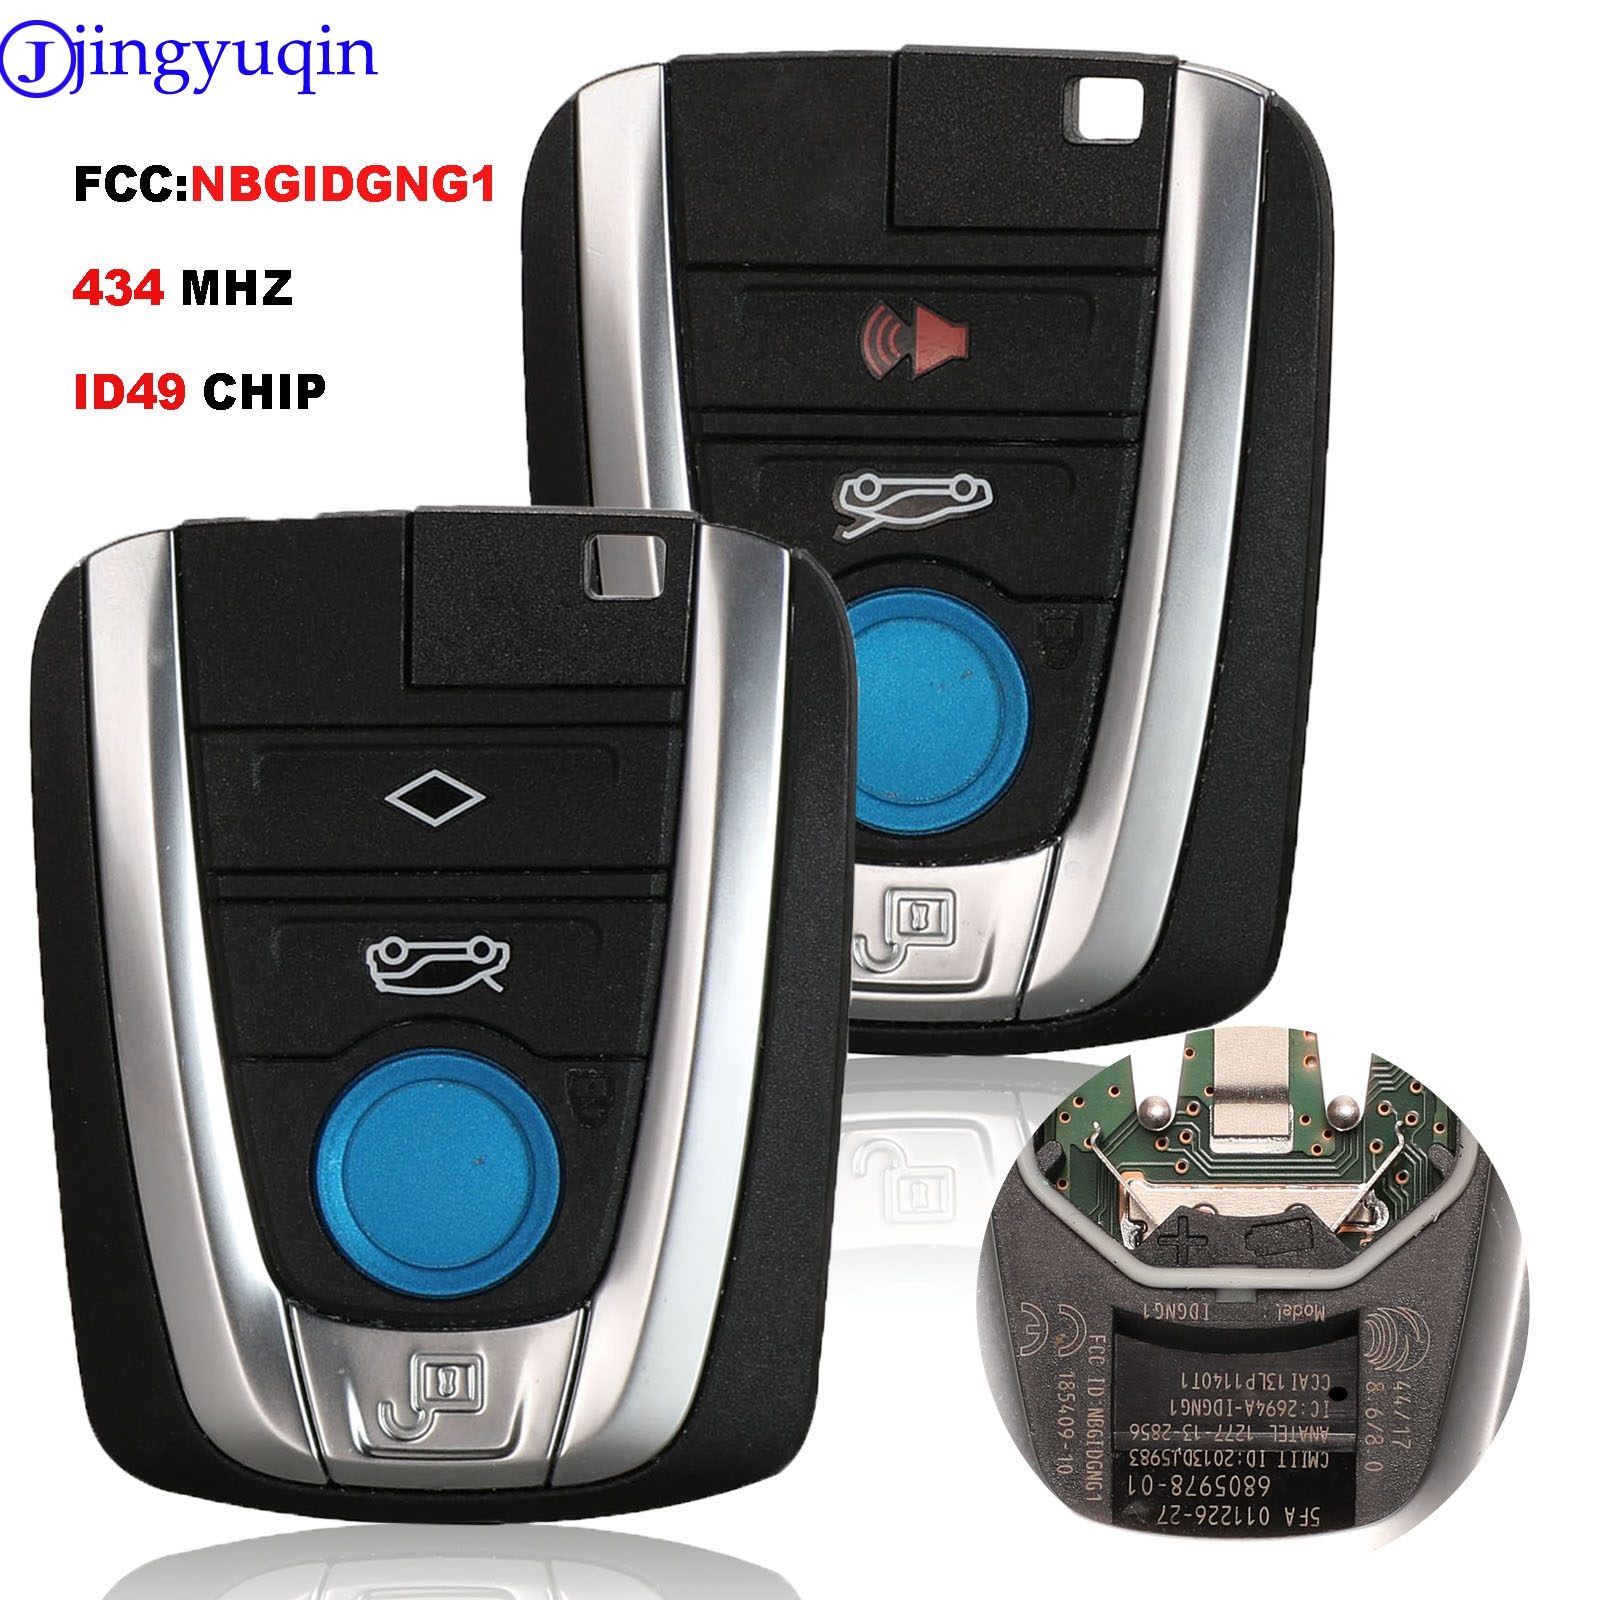 jingyuqin 4B Remote Control Car Key Fob 434MHz ID46 For BMW I3 I8 Smart Key FCC:NBGIDGNG1